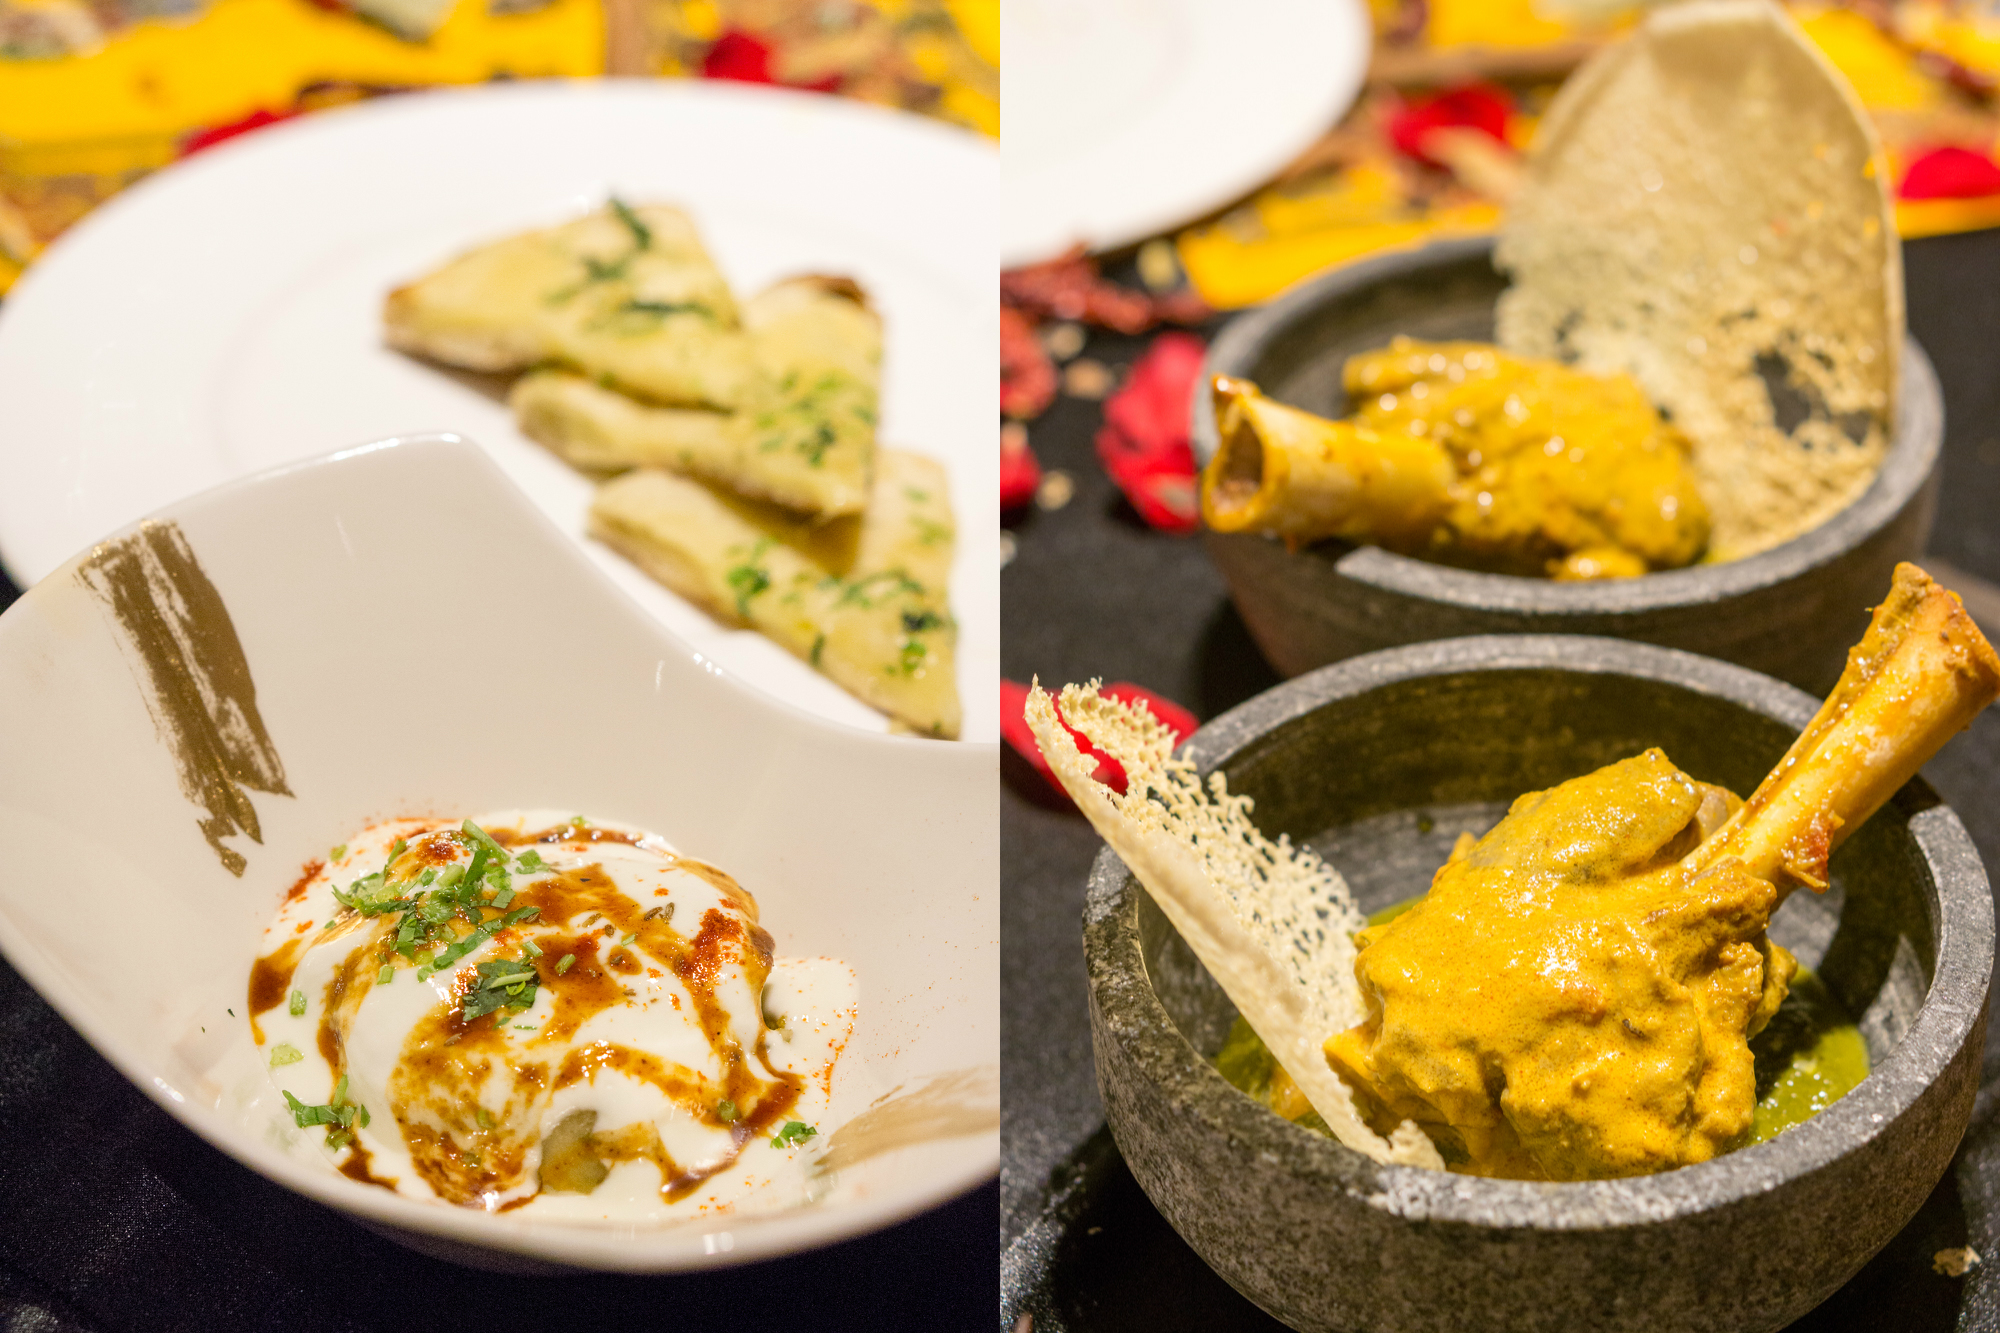 Indian Food Festival at Melt Cafe Mandarin Oriental Singapore - FotorCreated 2